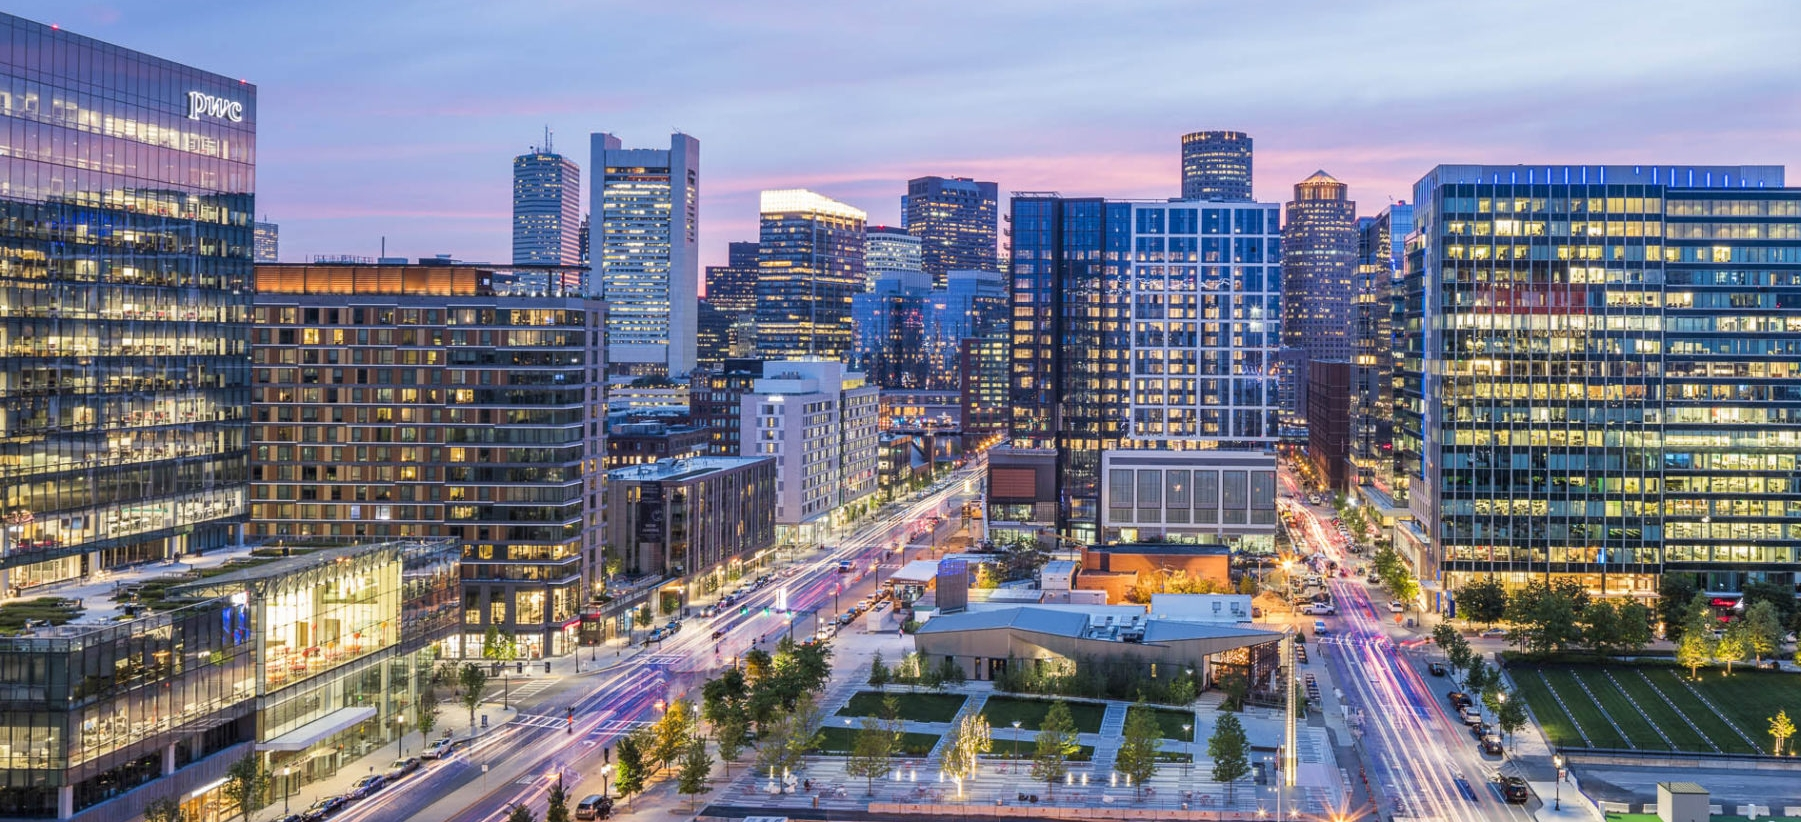 An aerial view of the Seaport District at night shows the newly-redeveloped neighborhood as bustling.